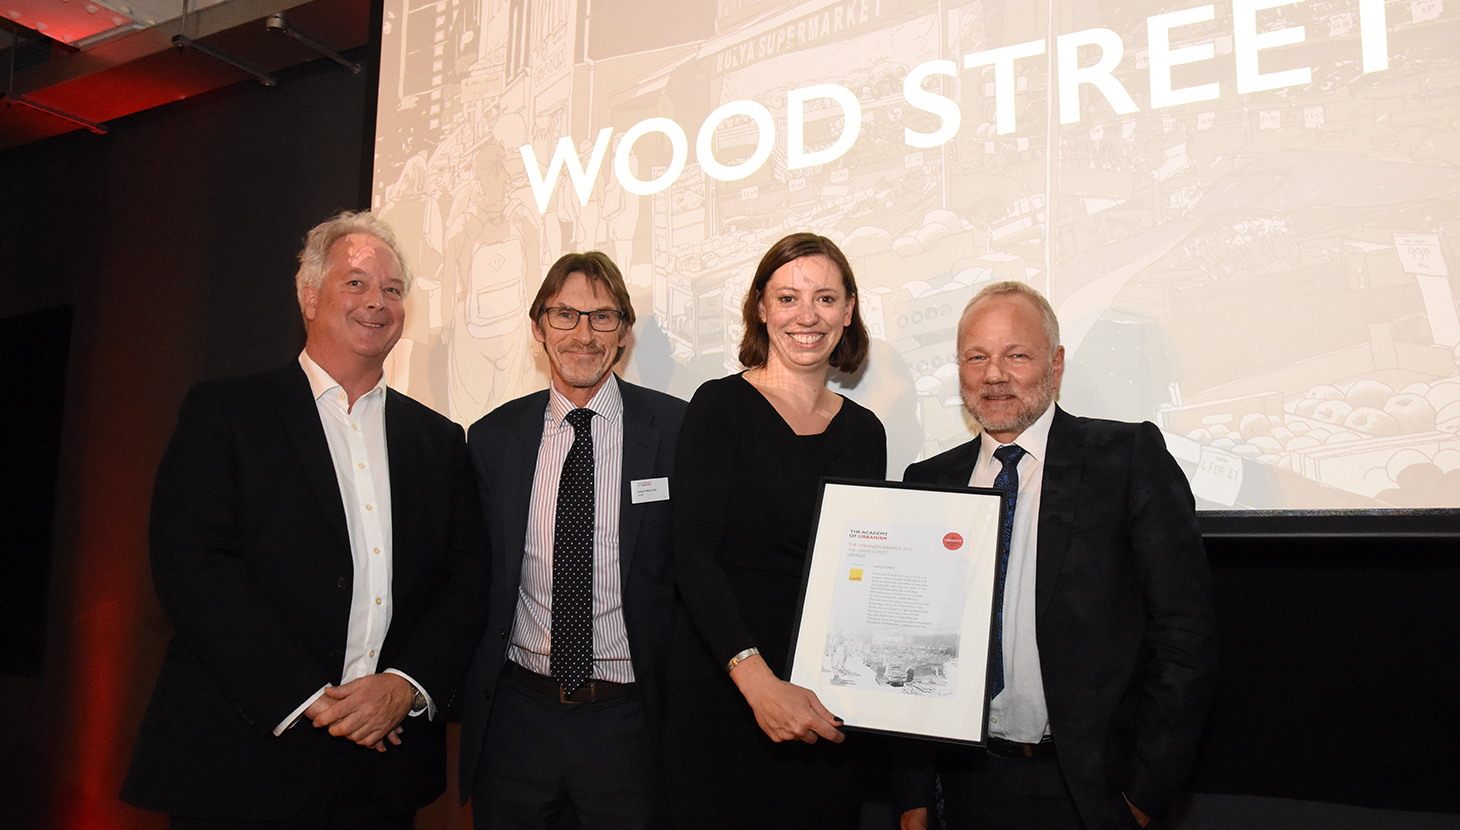 Cllr Clare Coghill of Waltham Forest accepts Wood Street's Great Street Award